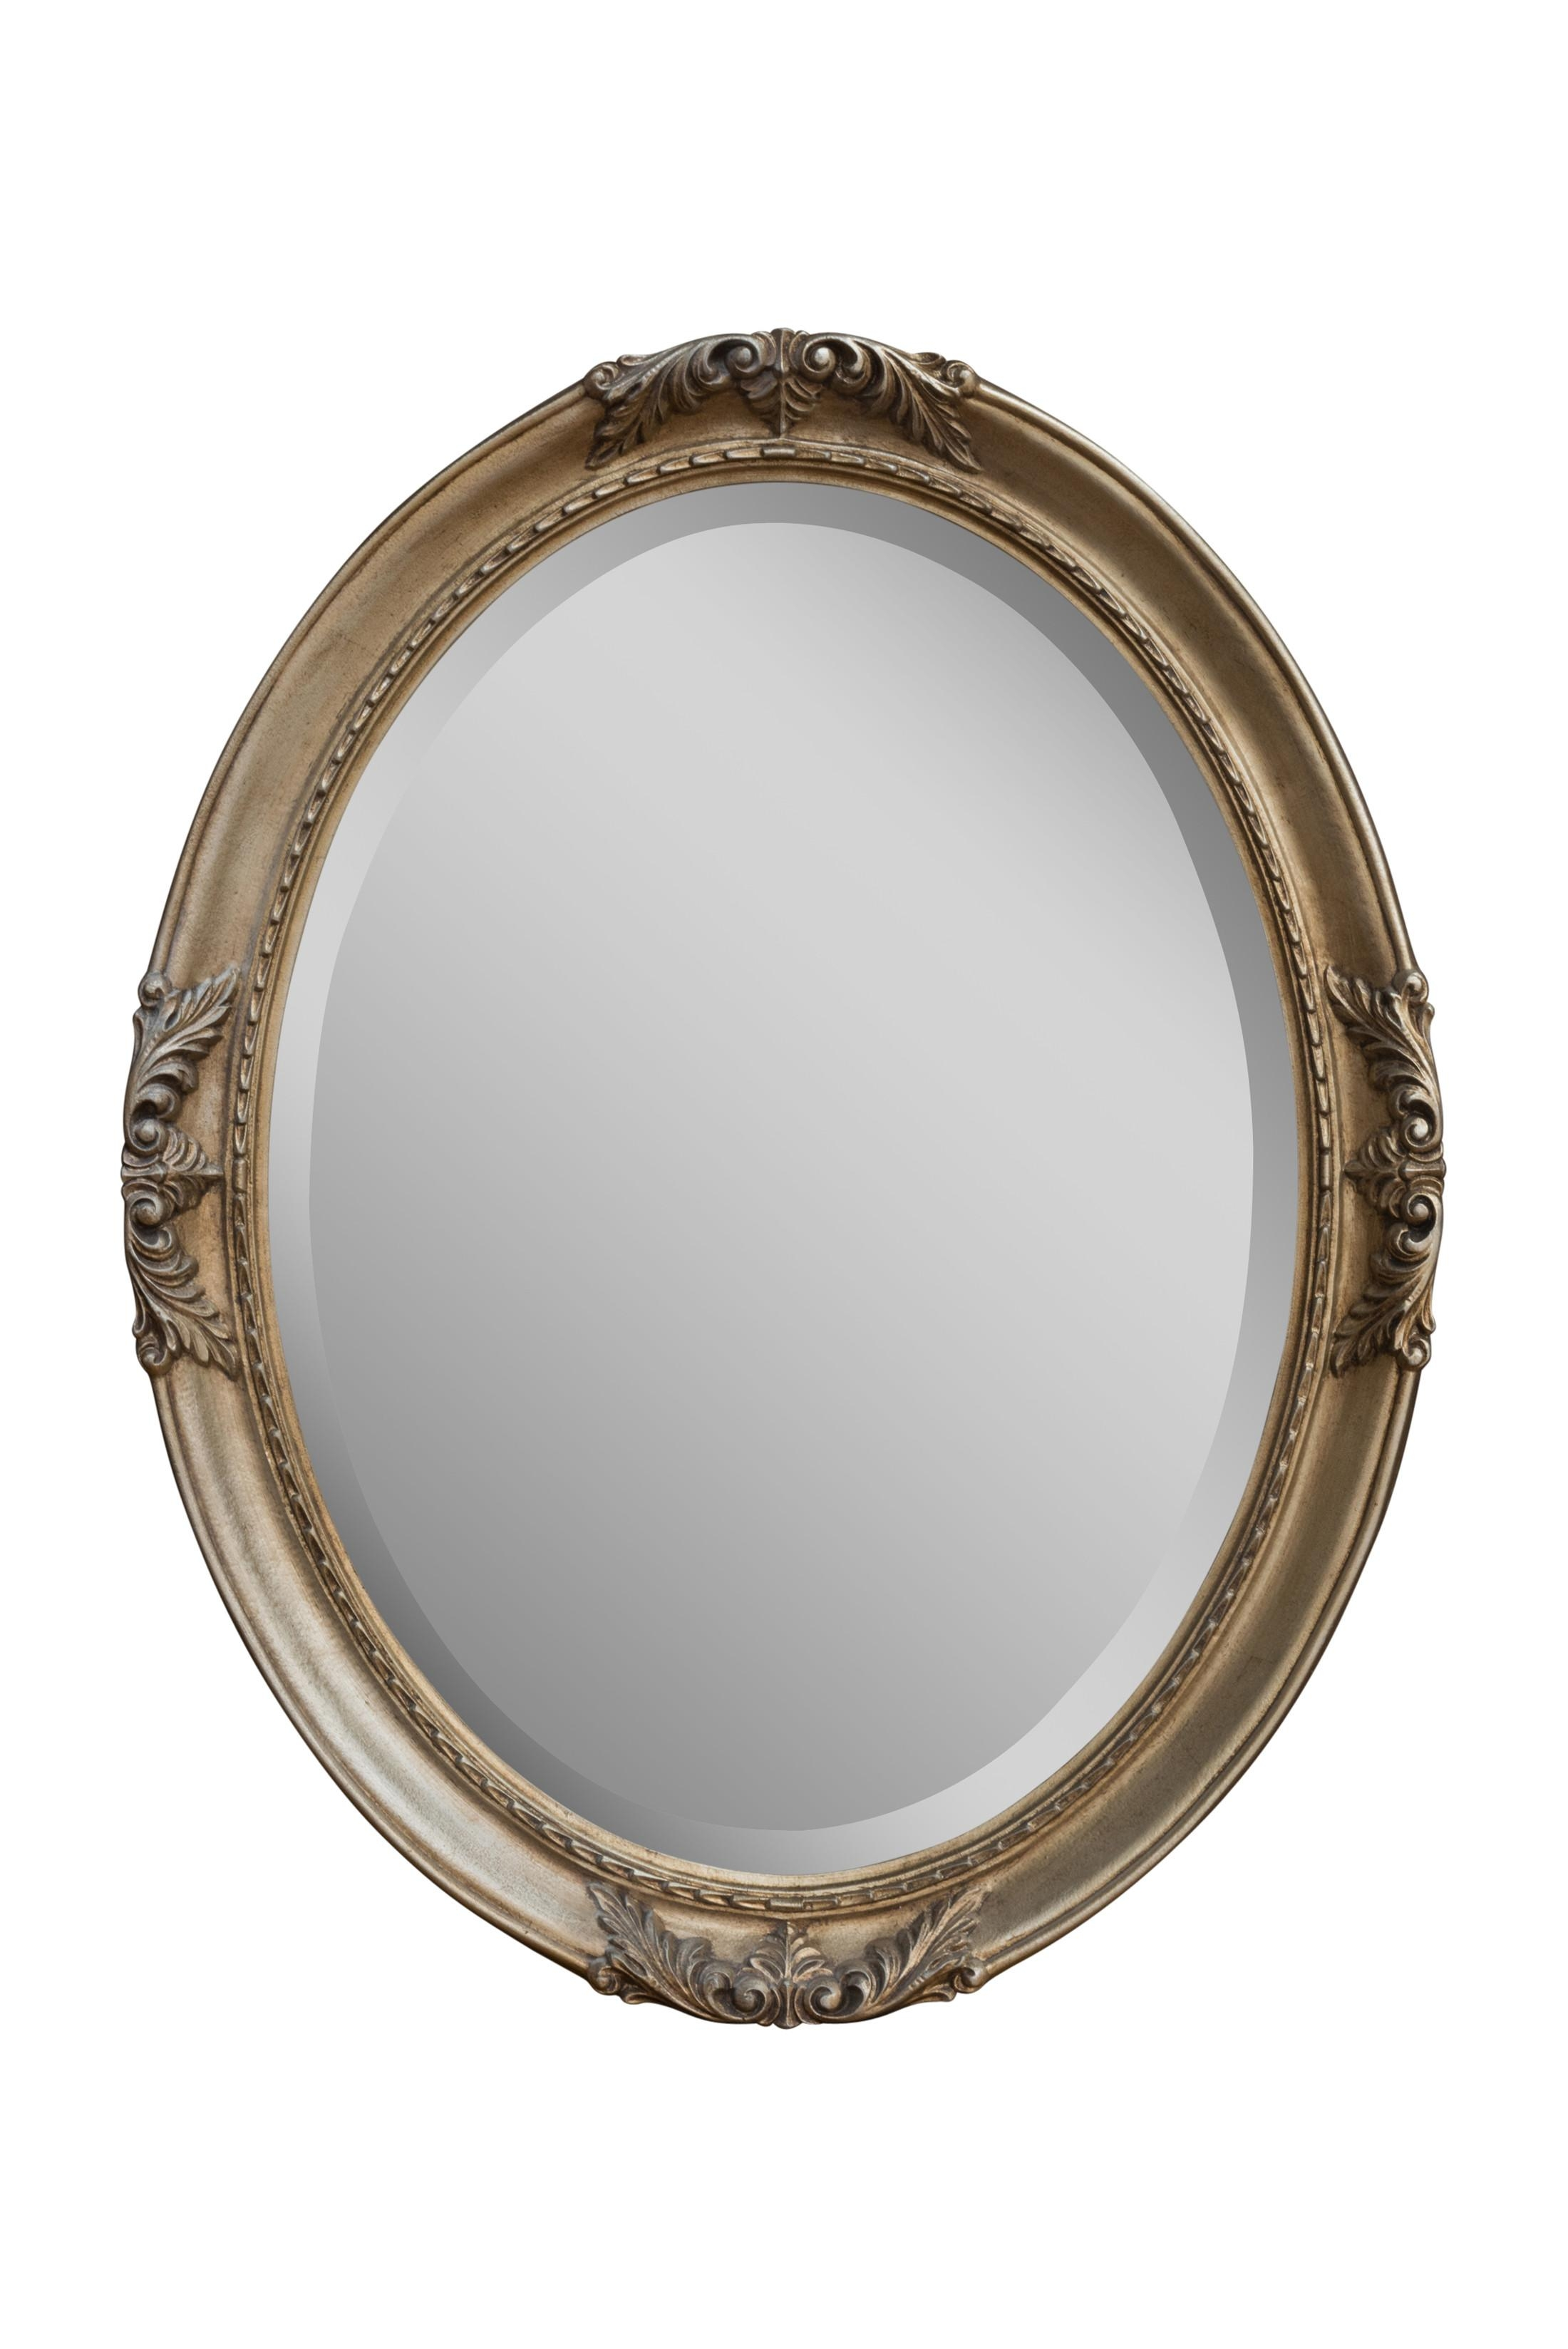 Silver Flora Oval | Bedroom Mirrors For Sale – Panfili Mirrors With Oval Silver Mirror (View 7 of 20)